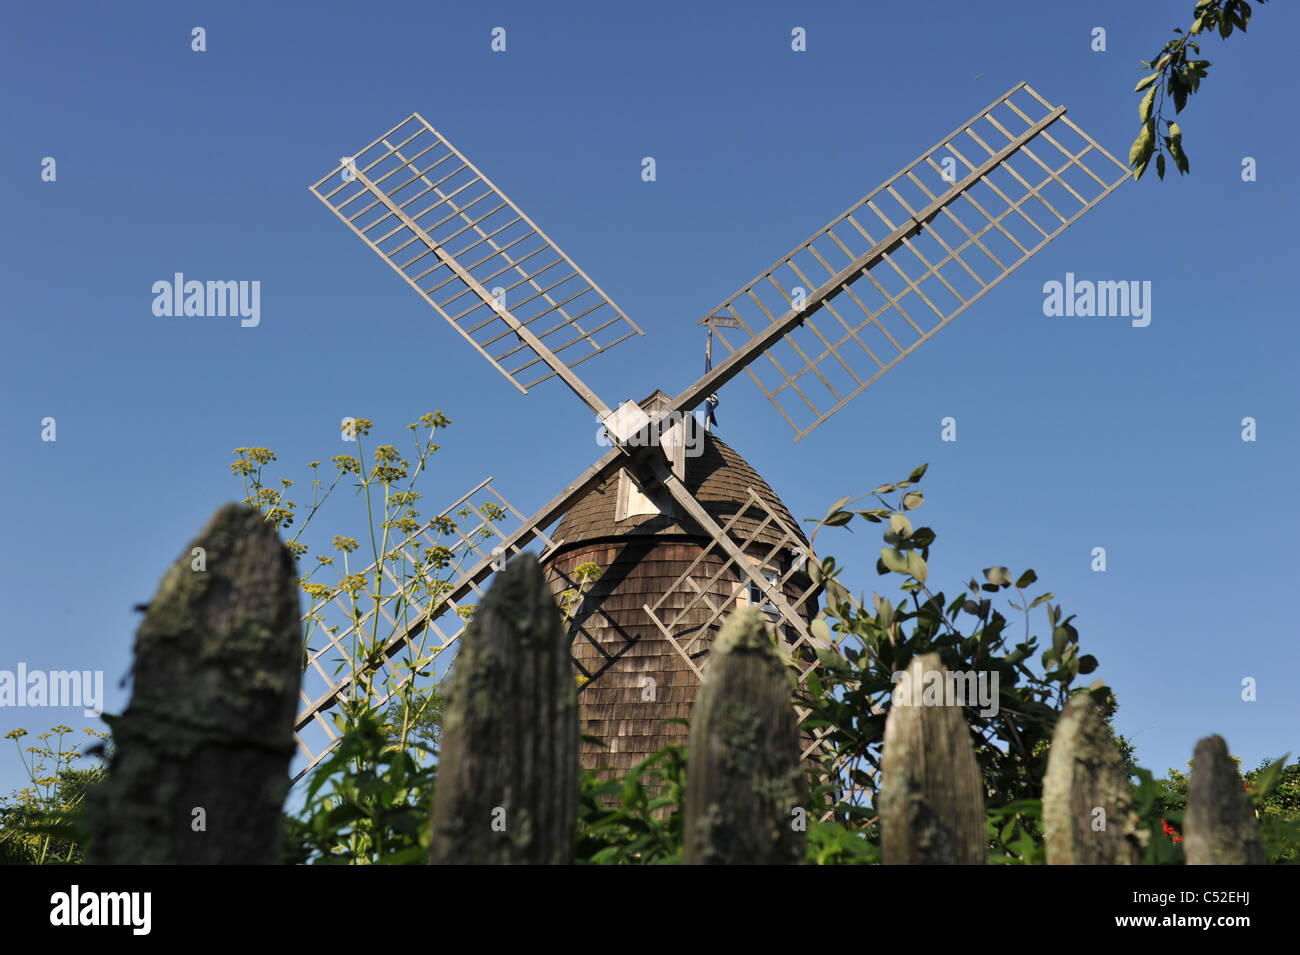 Windmill in the Hamptons, Long Island New York - Stock Image